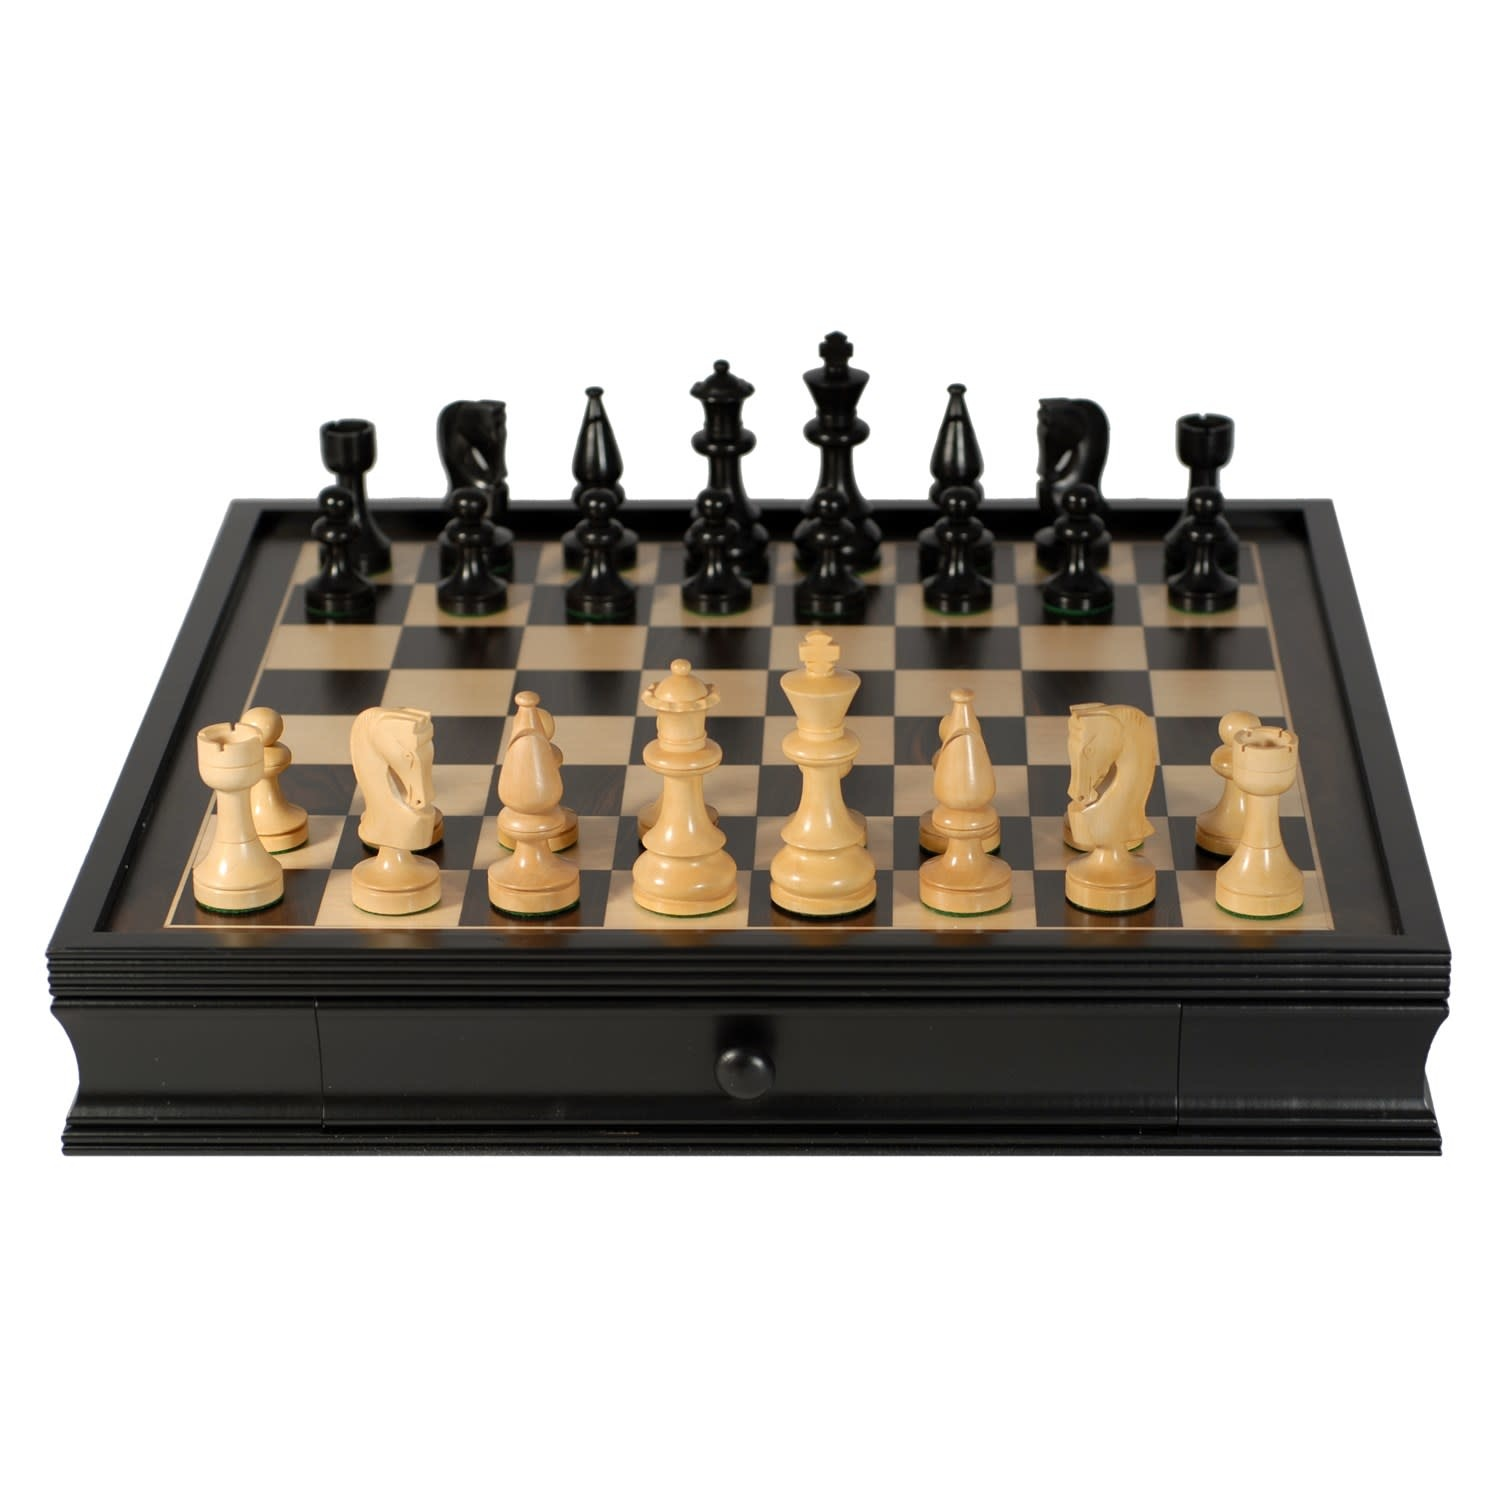 Grand Russian Style Chess Set with Storage Drawers - Weighted Pieces & Black Stained Wood Board 19 in.